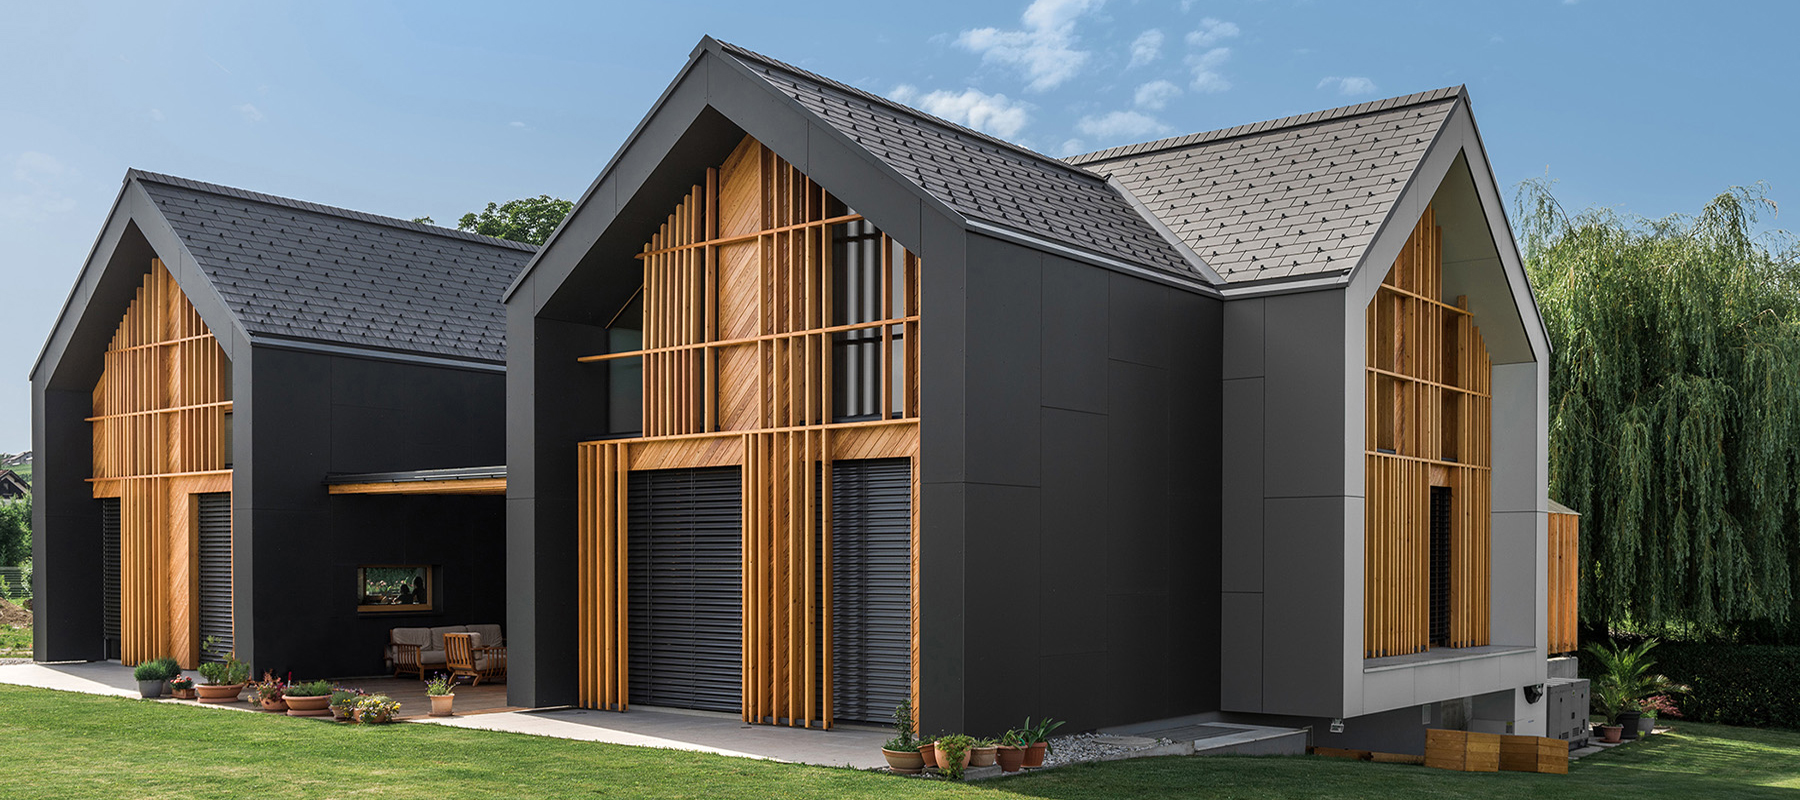 All black house design of three gabled volumes digsdigs for Architecture design of house